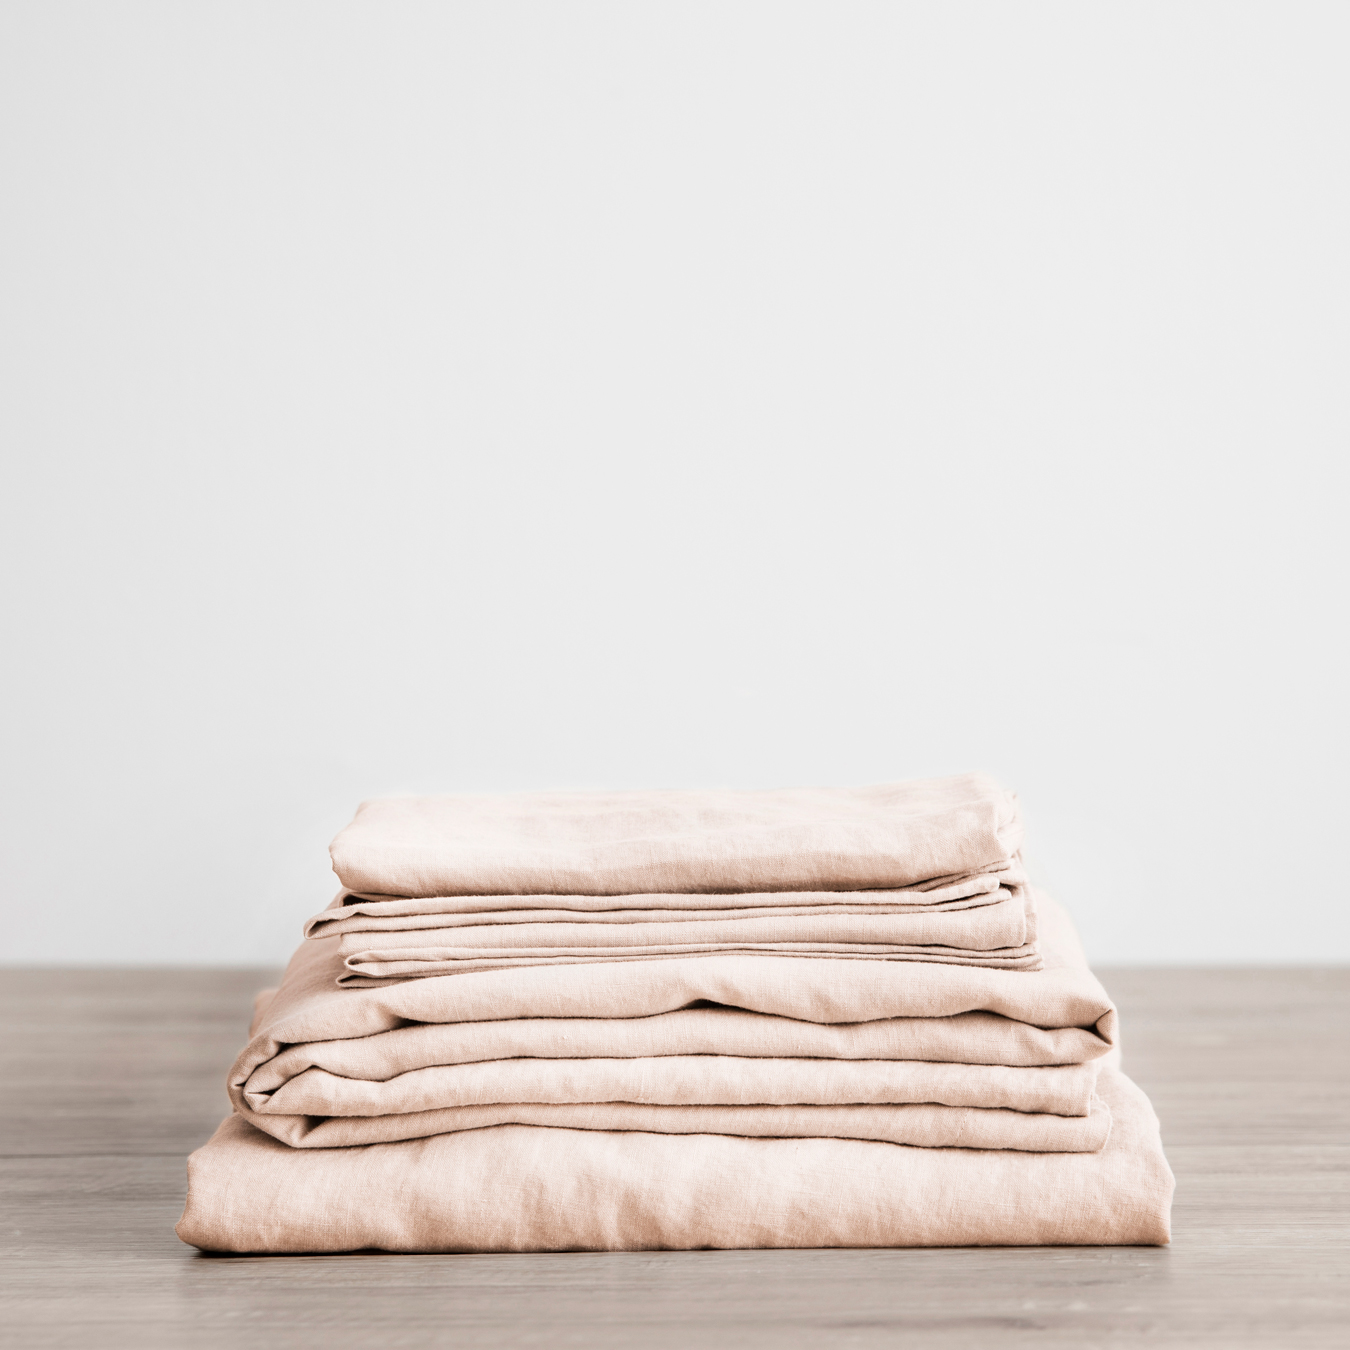 King Linen Sheet Set with Pillowcases Blush